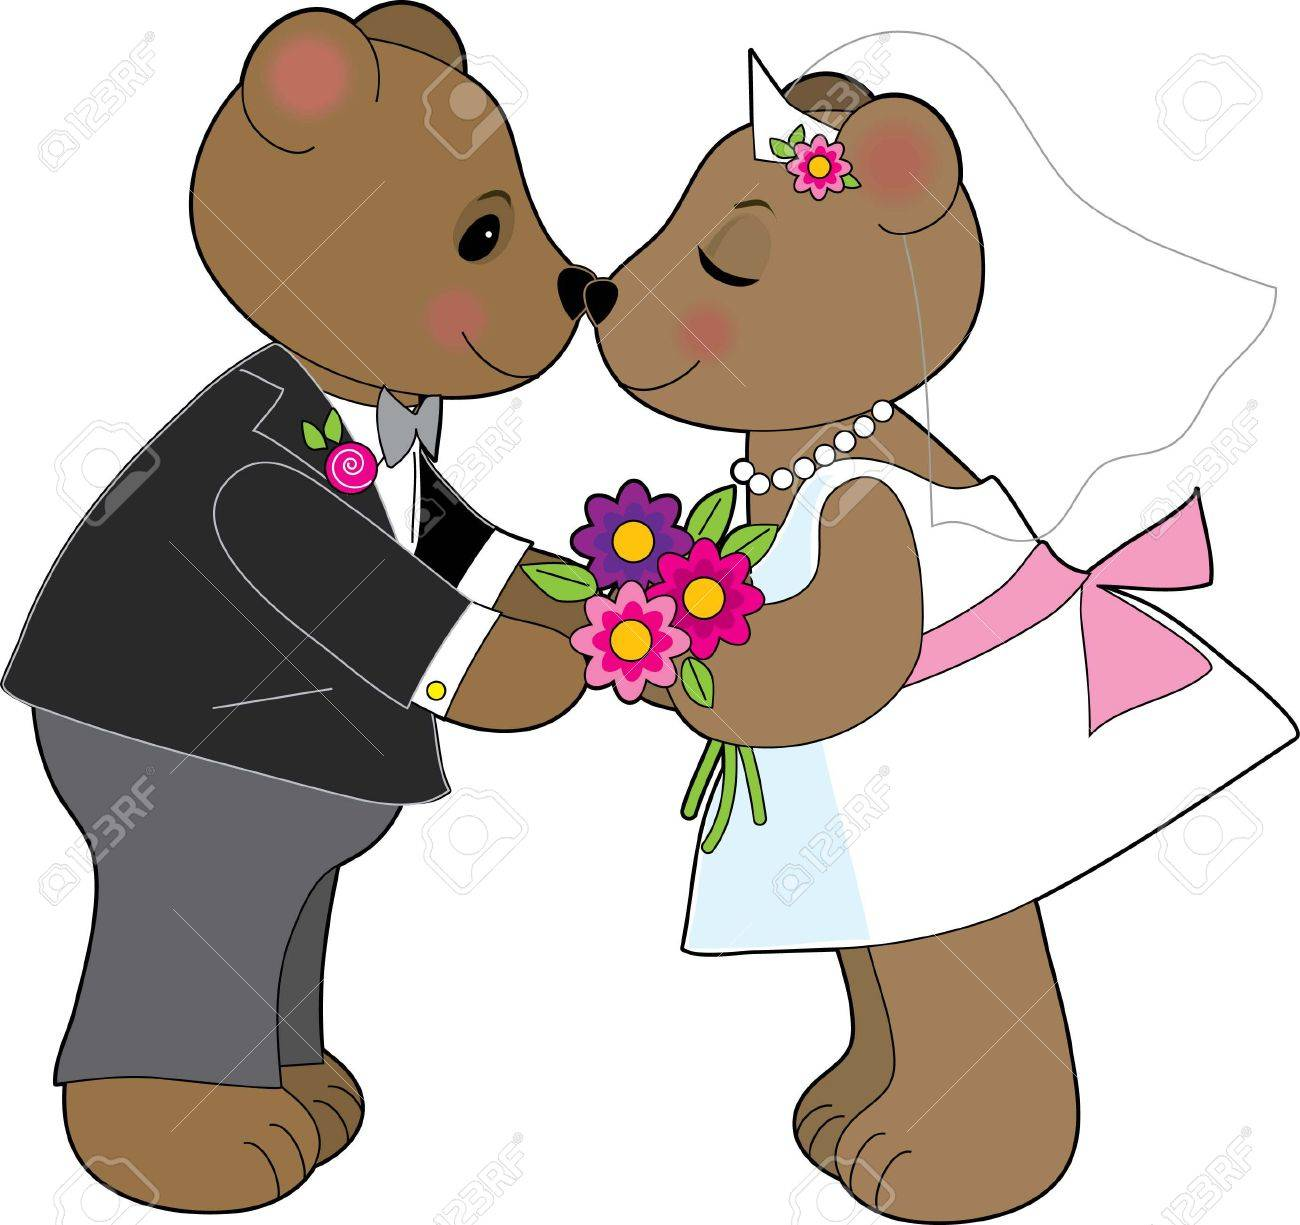 A pair of teddy bears getting married Stock Vector - 1696270